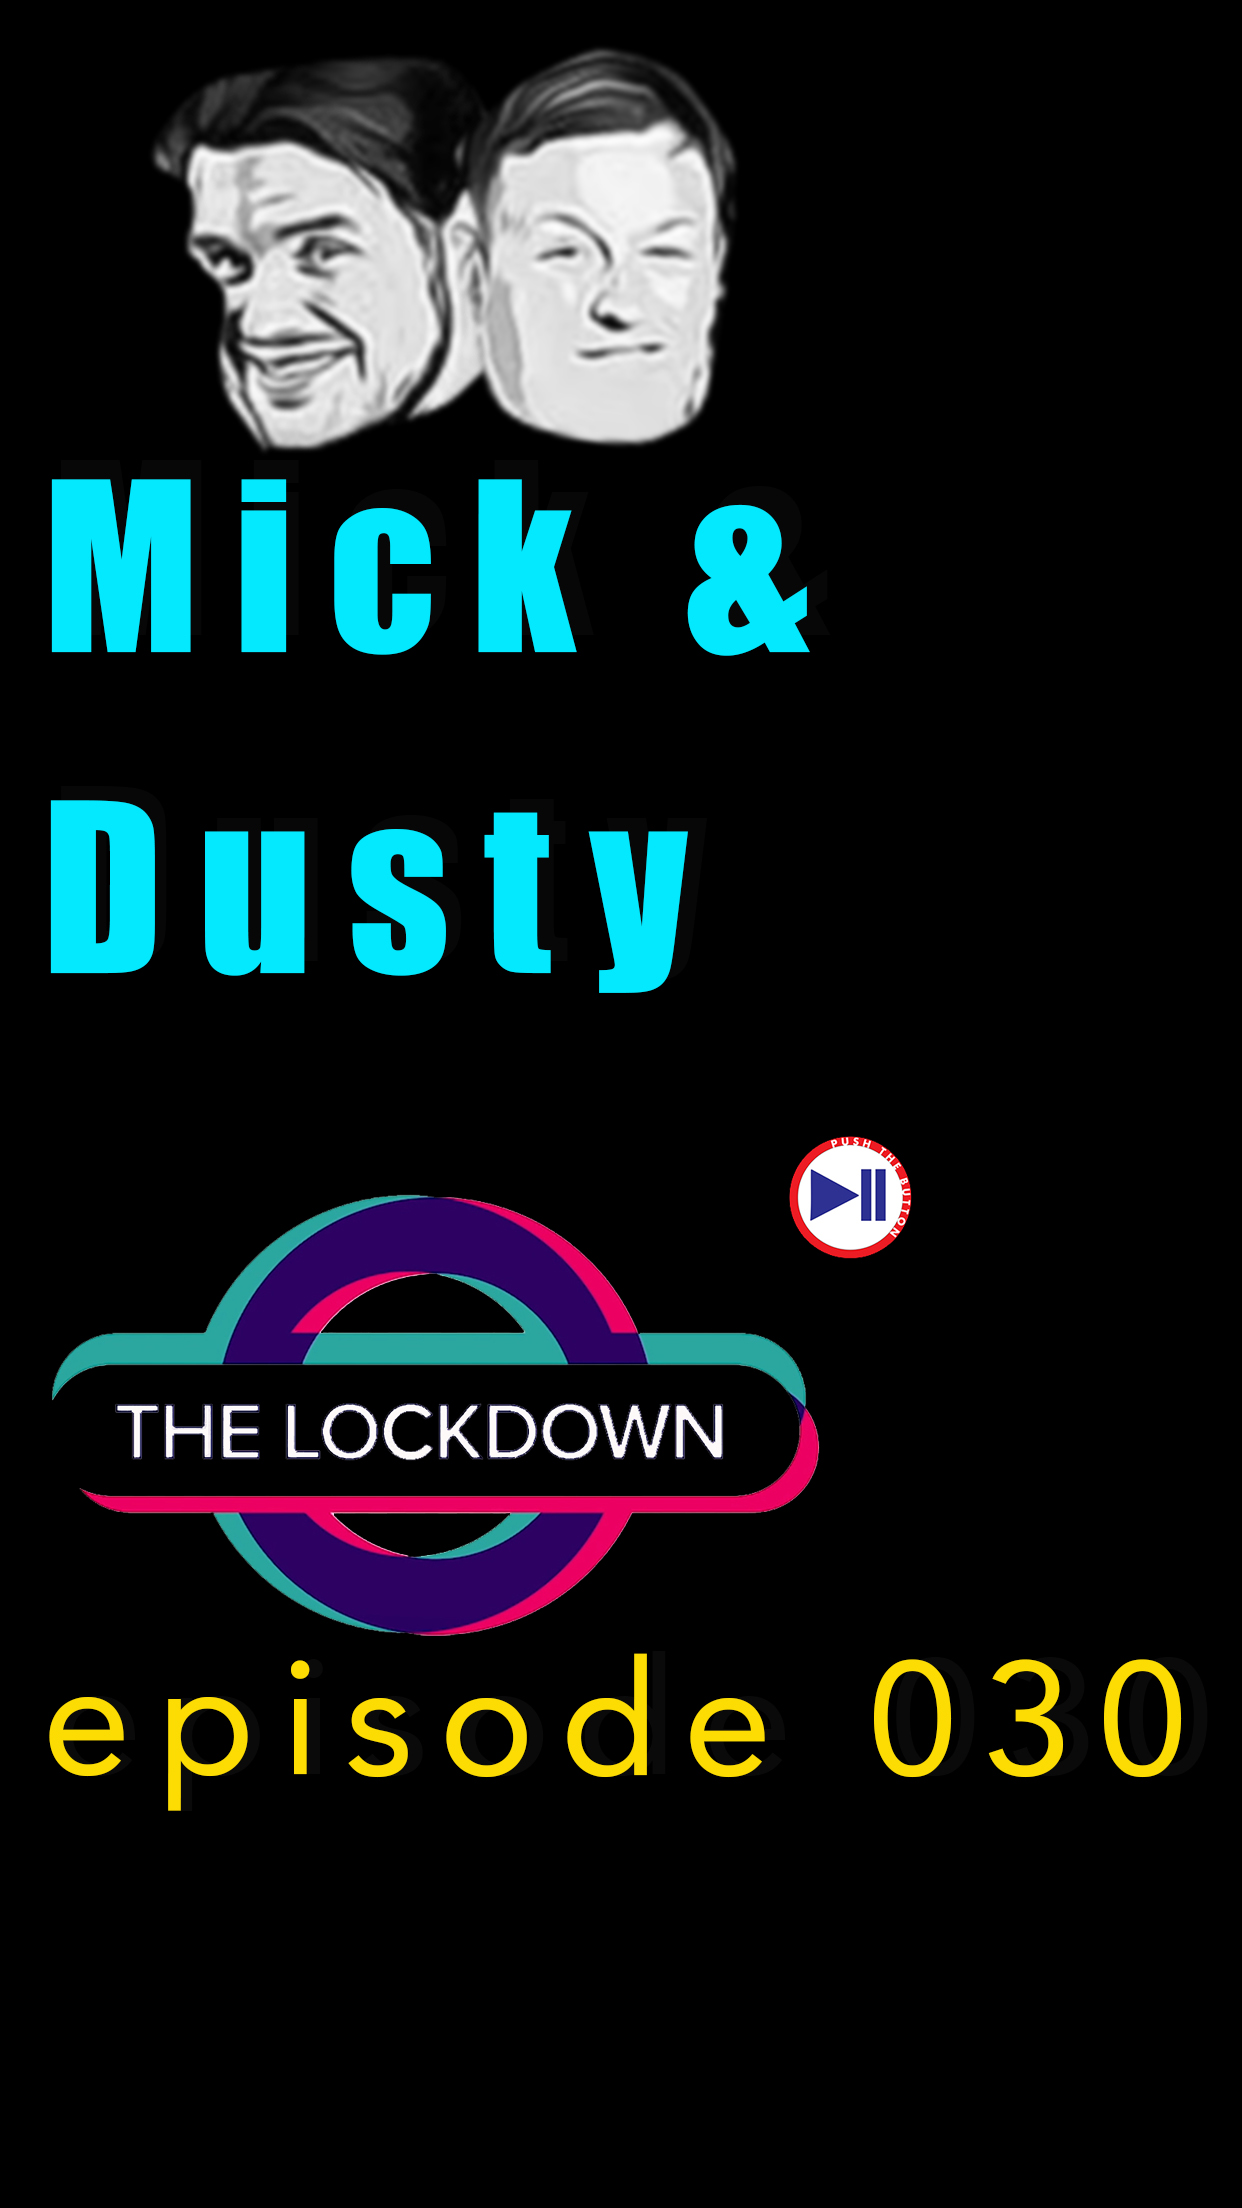 The Lockdown ep 030 Mick And Dusty